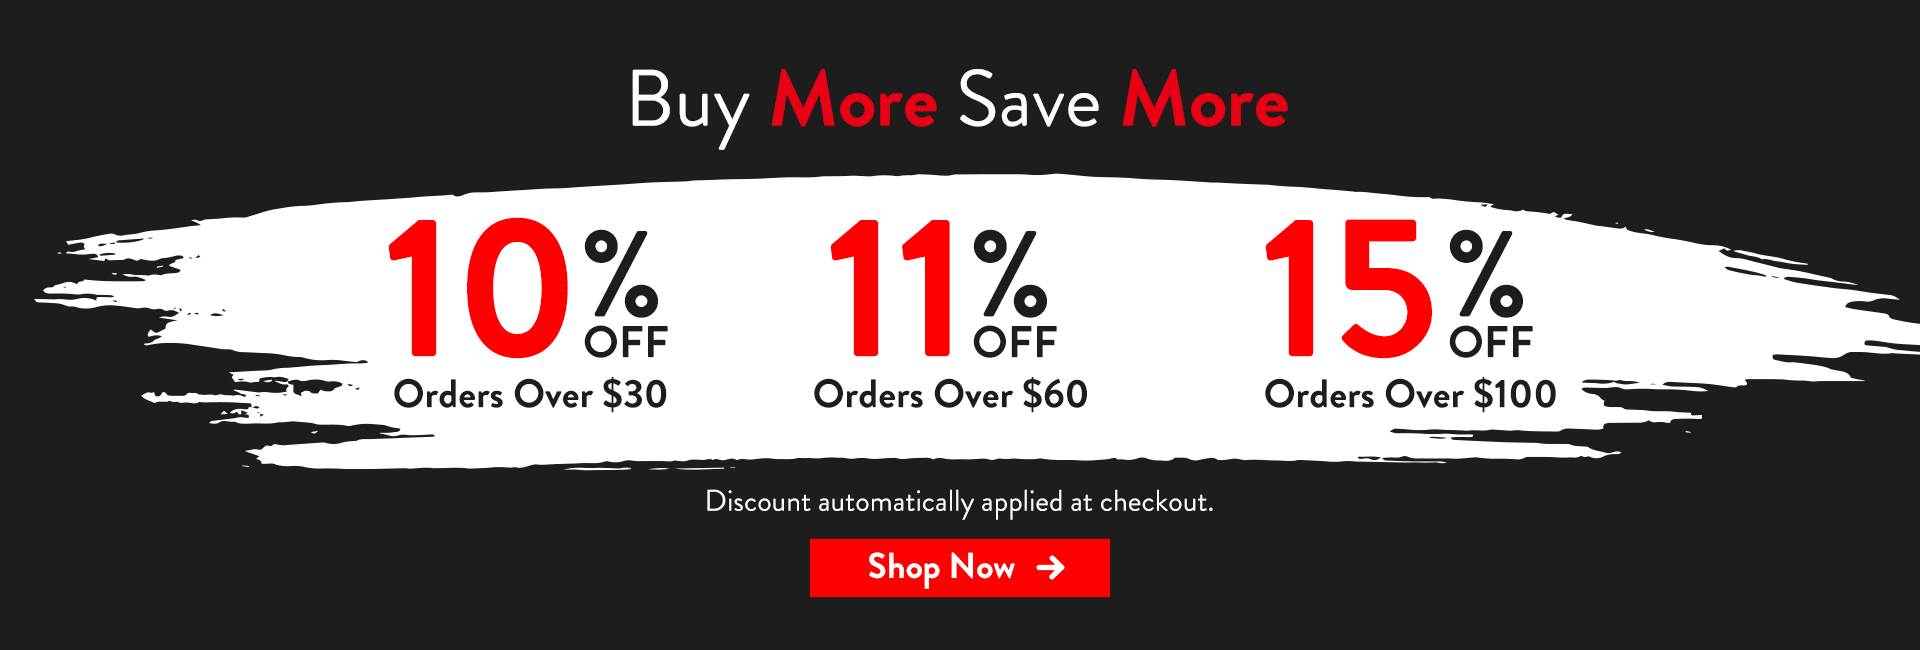 buy more save more redragon